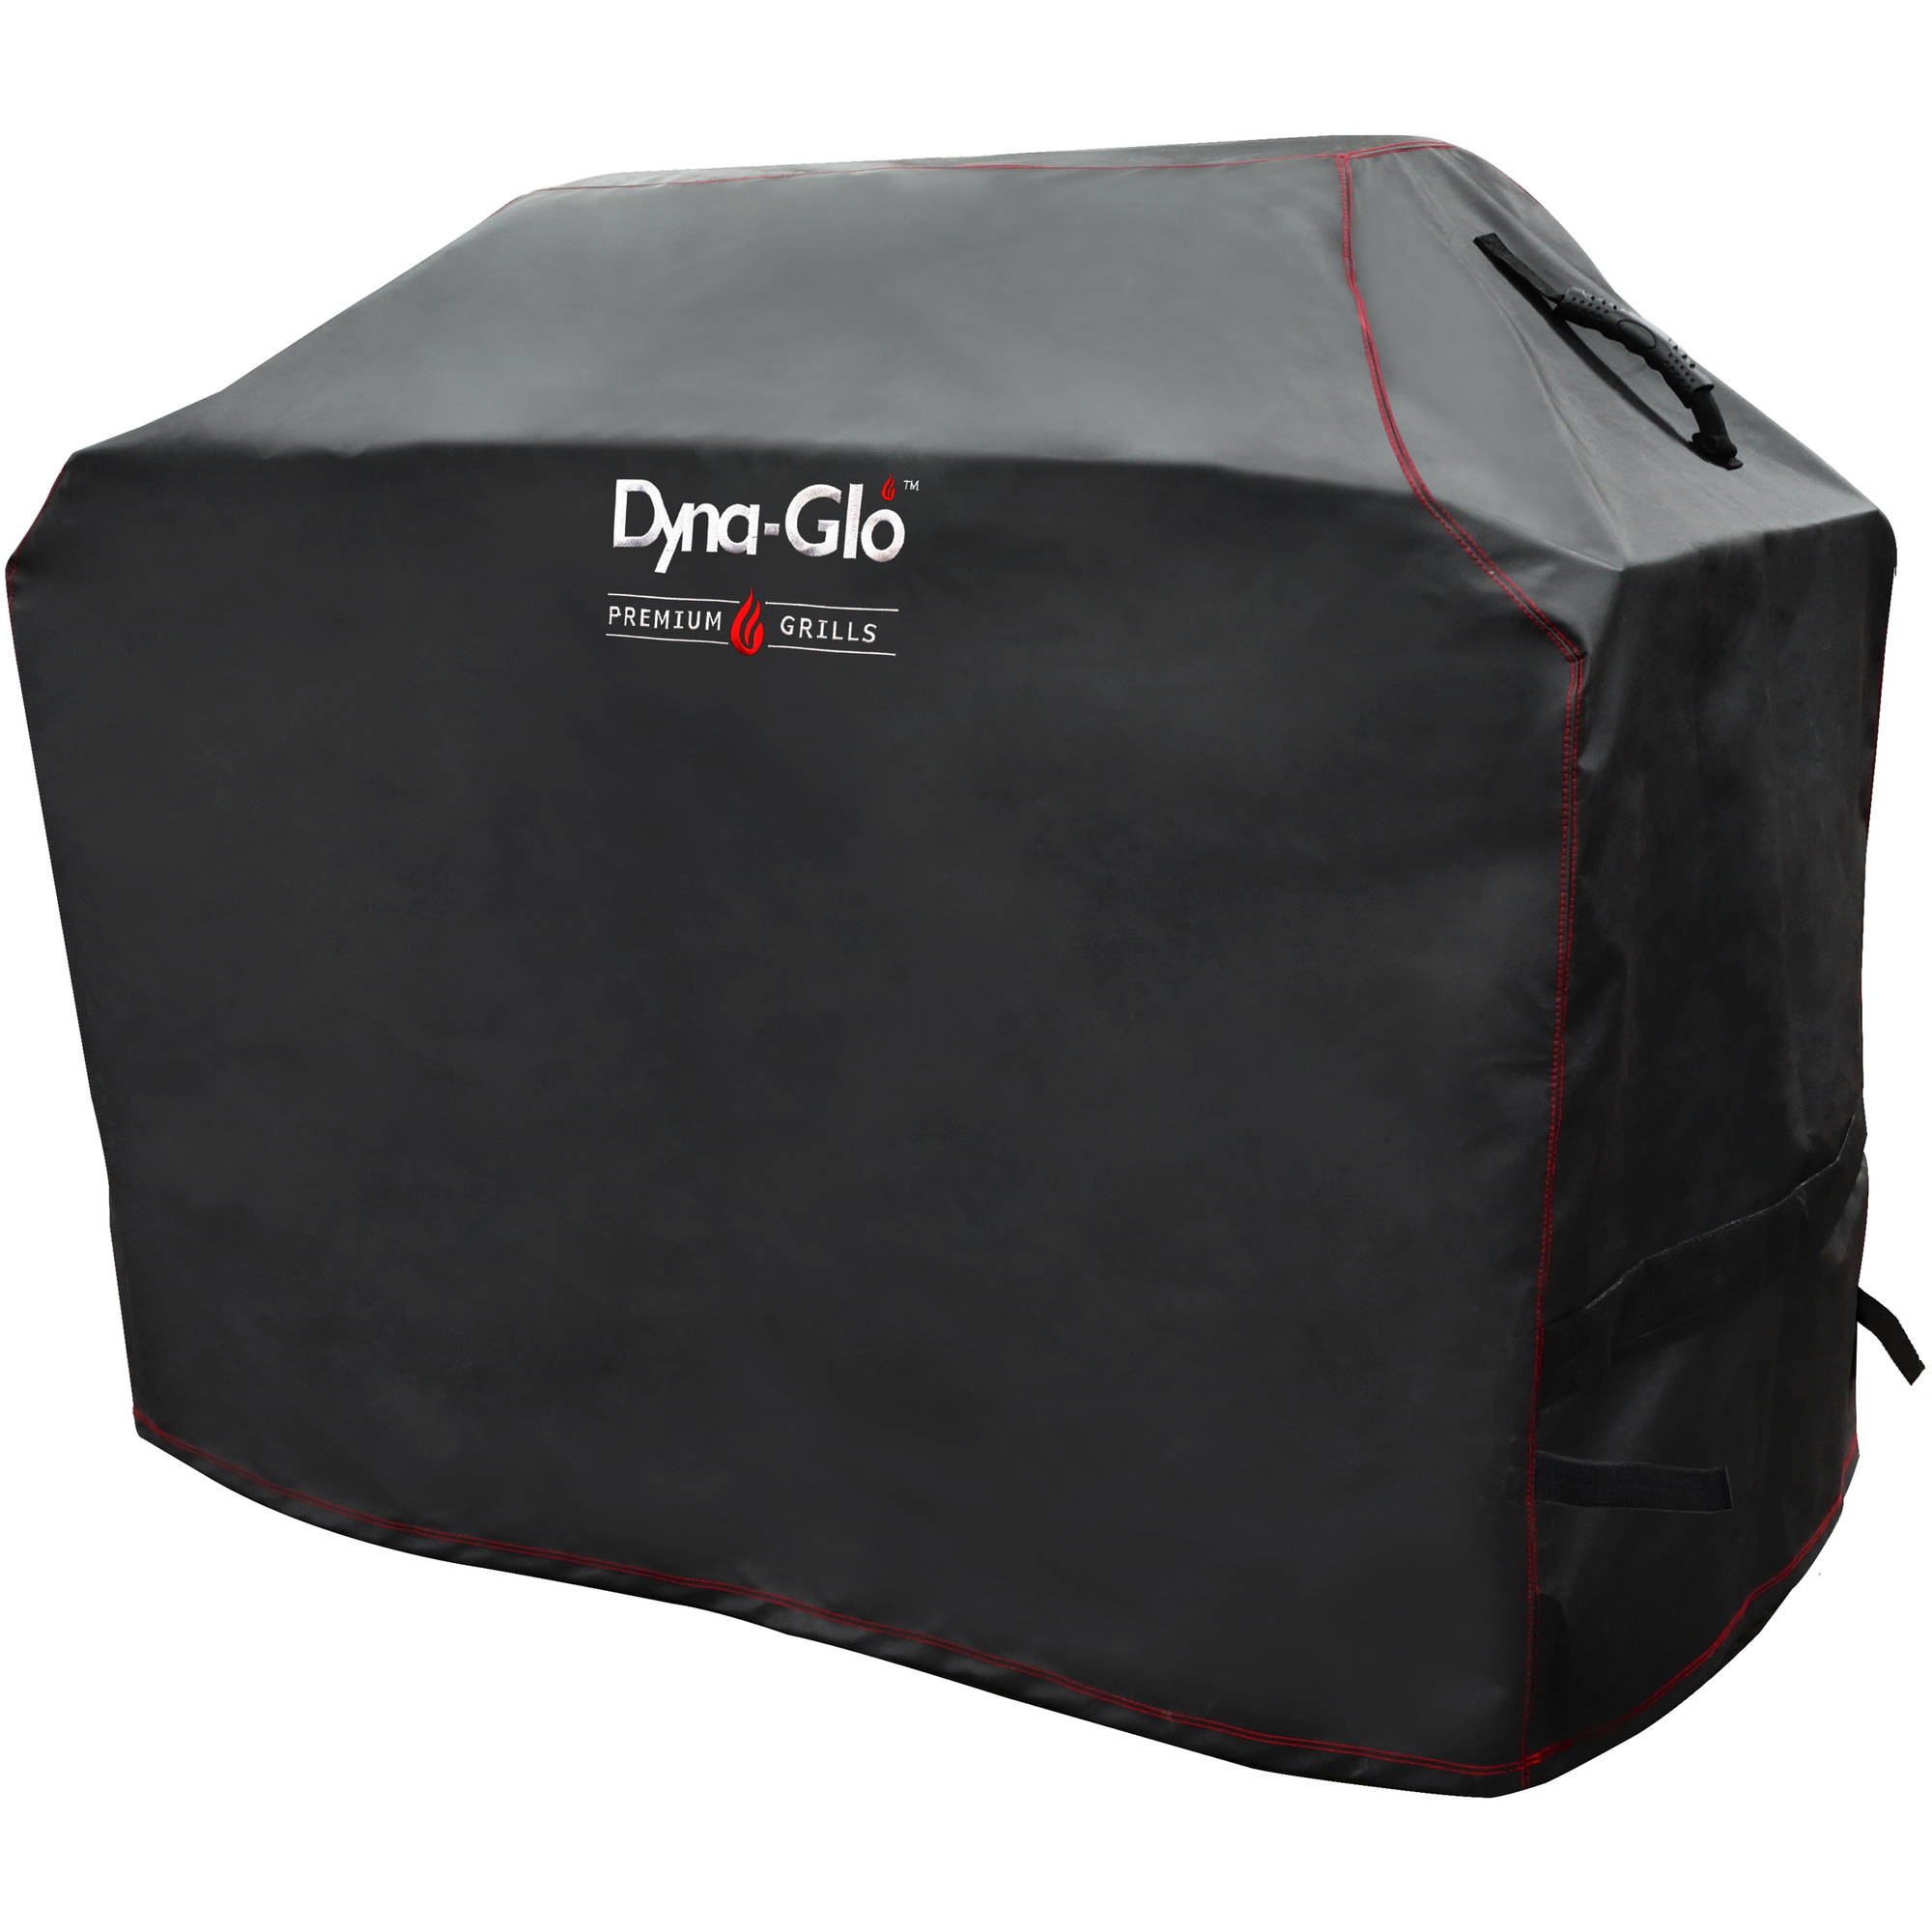 "Dyna-Glo DG600C Premium Grill Cover for 64"" Grills"